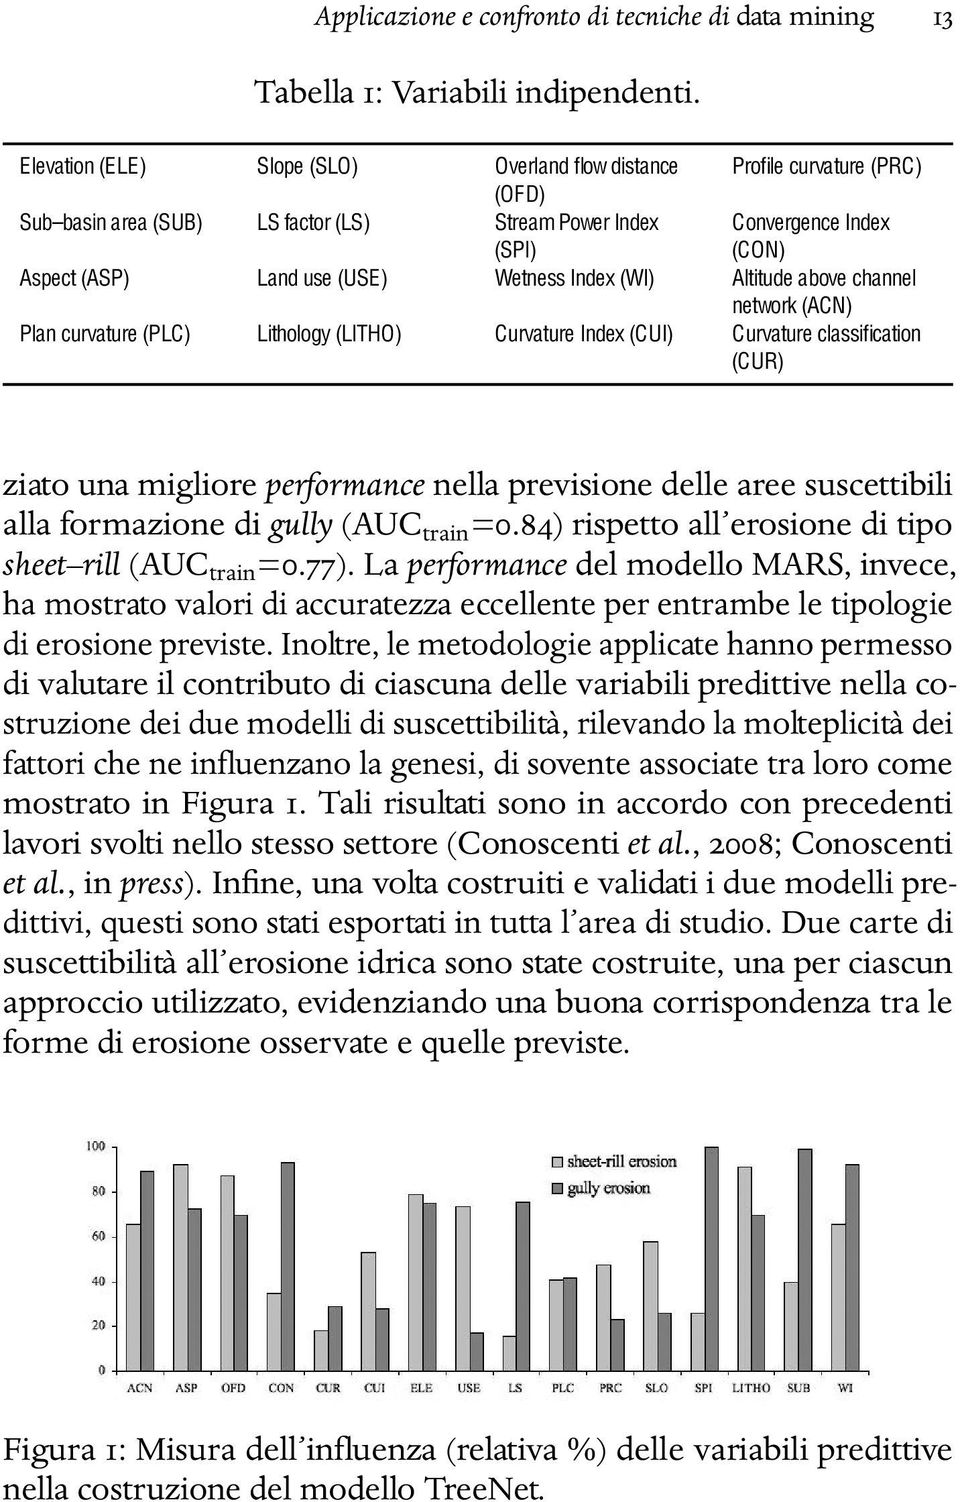 Wetness Index (WI) Altitude above channel network (ACN) Plan curvature (PLC) Lithology (LITHO) Curvature Index (CUI) Curvature classification (CUR) ziato una migliore performance nella previsione